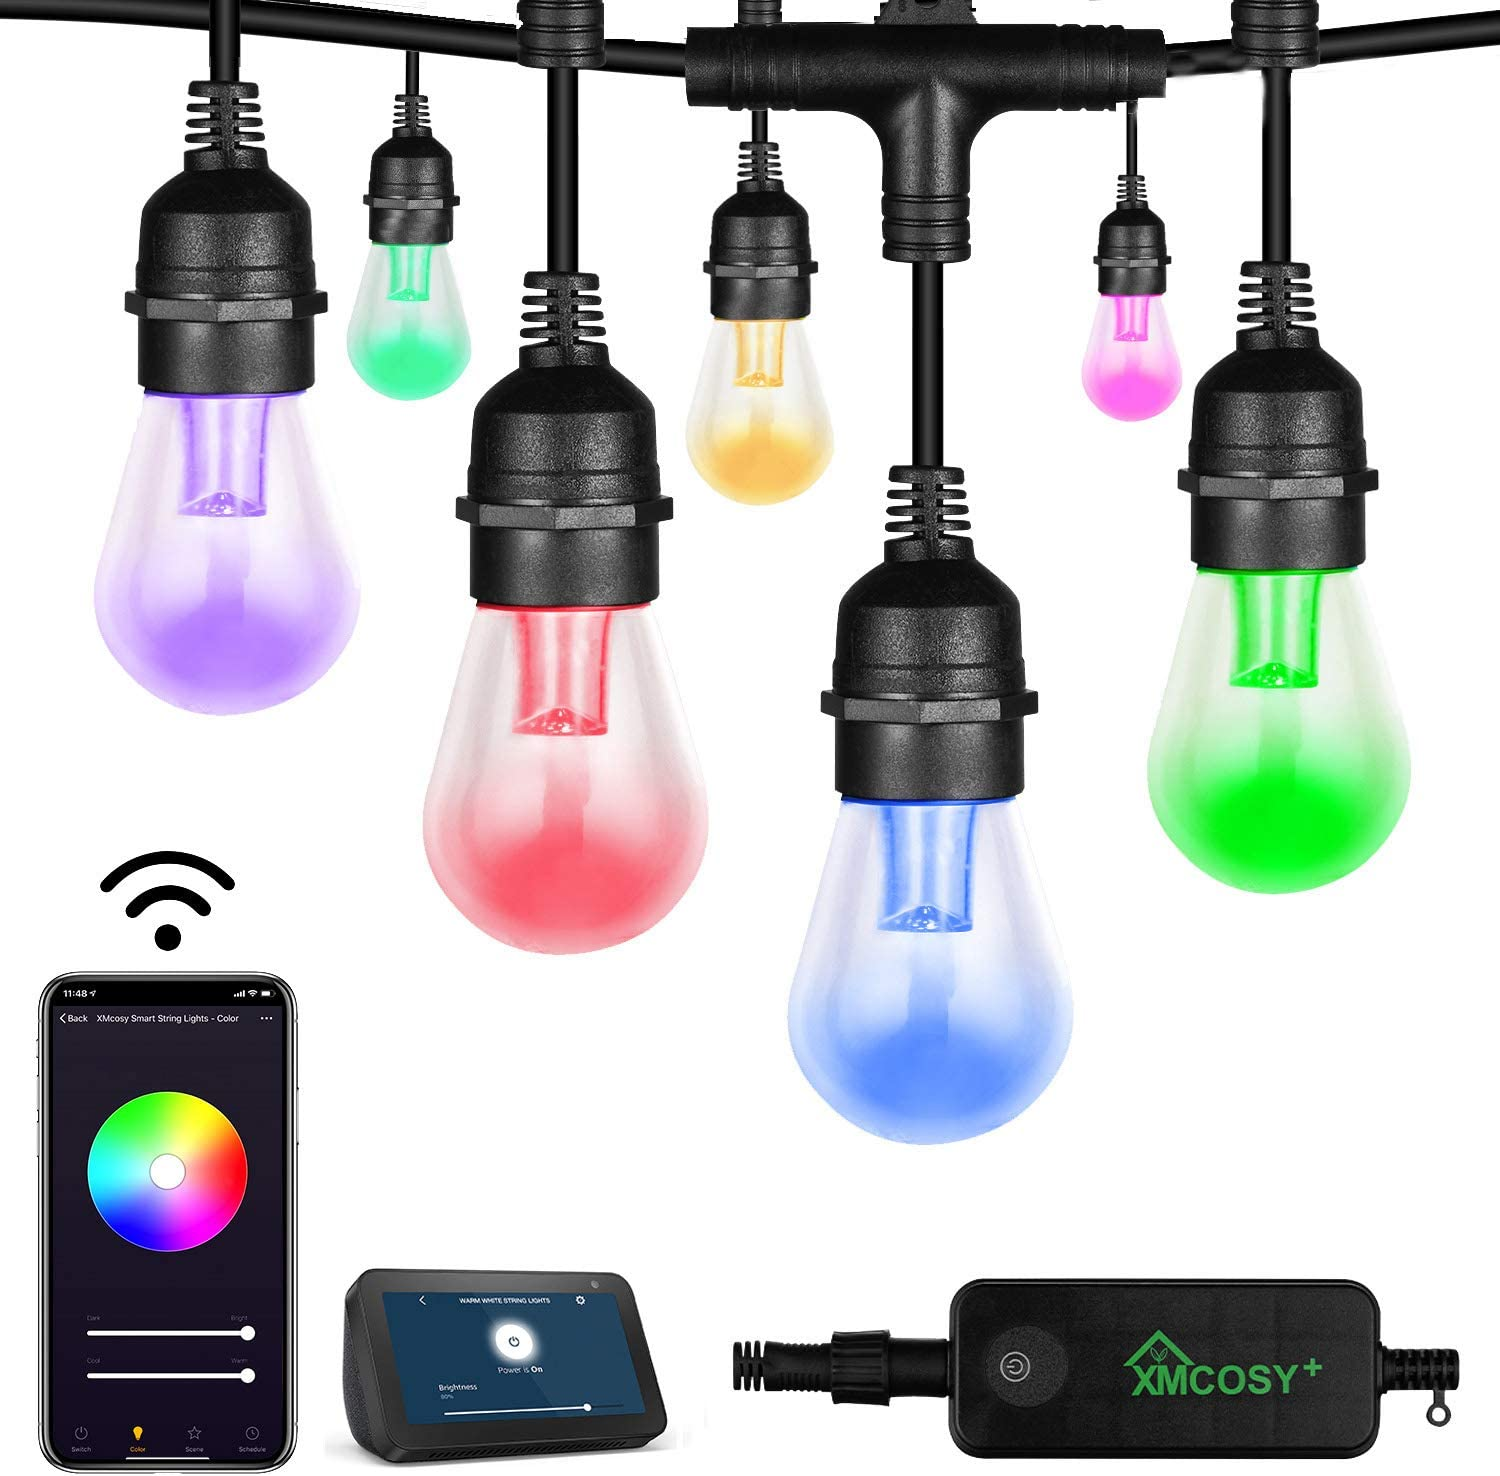 Outdoor String Lights - Patio Lights Color Changing String 15 LED Bulbs, 2.4GHz Wi-Fi App Controlled, Waterproof/Shatterproof 49Ft Extendable Color Wheel & Custom Scene for Occasions Works with Alexa